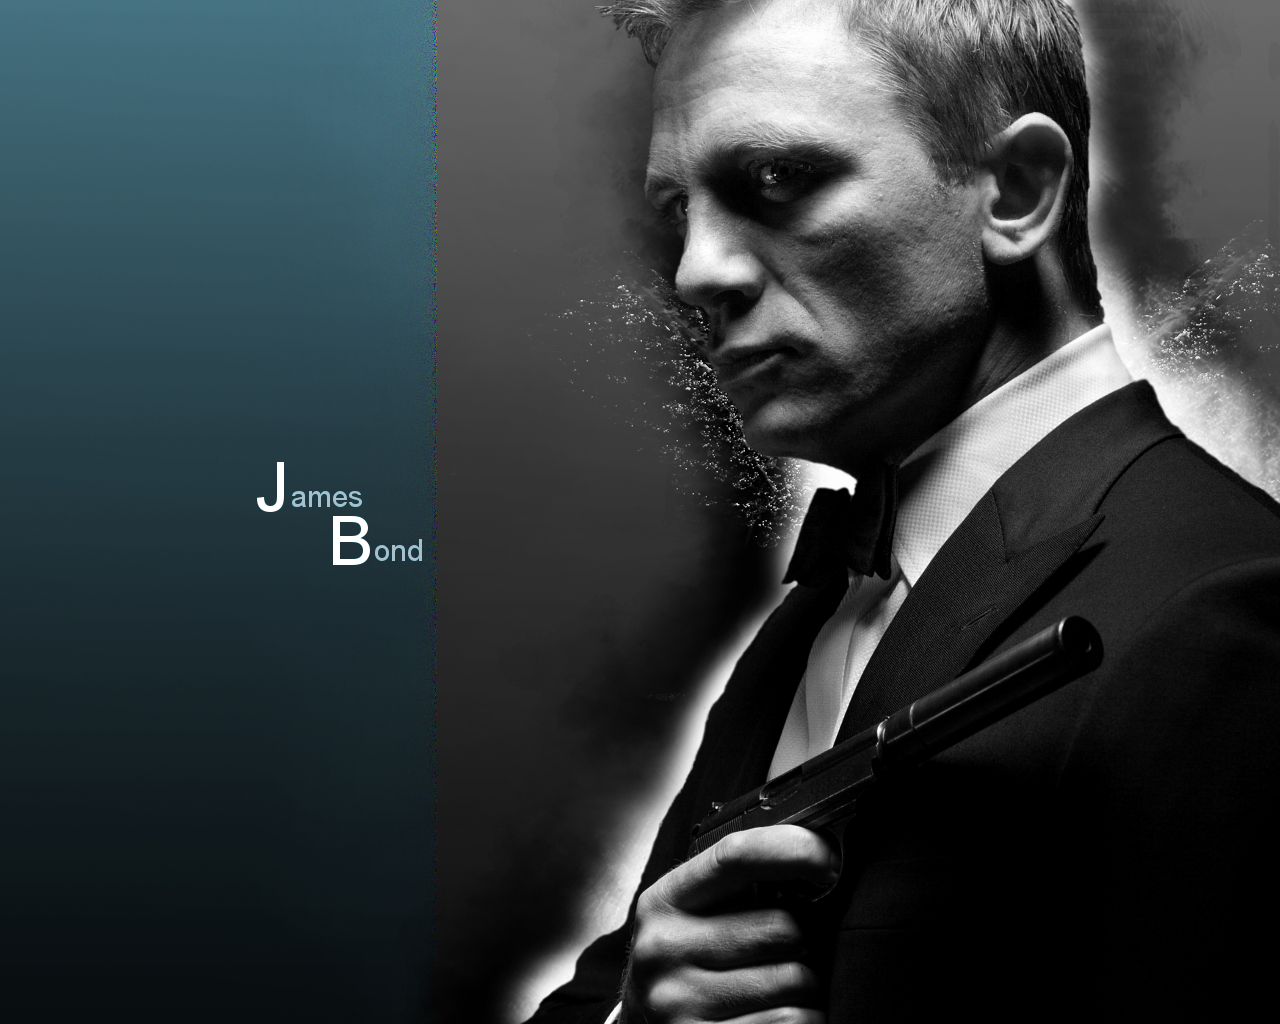 Fine James Bond Photos and Pictures, James Bond HD Widescreen Wallpapers